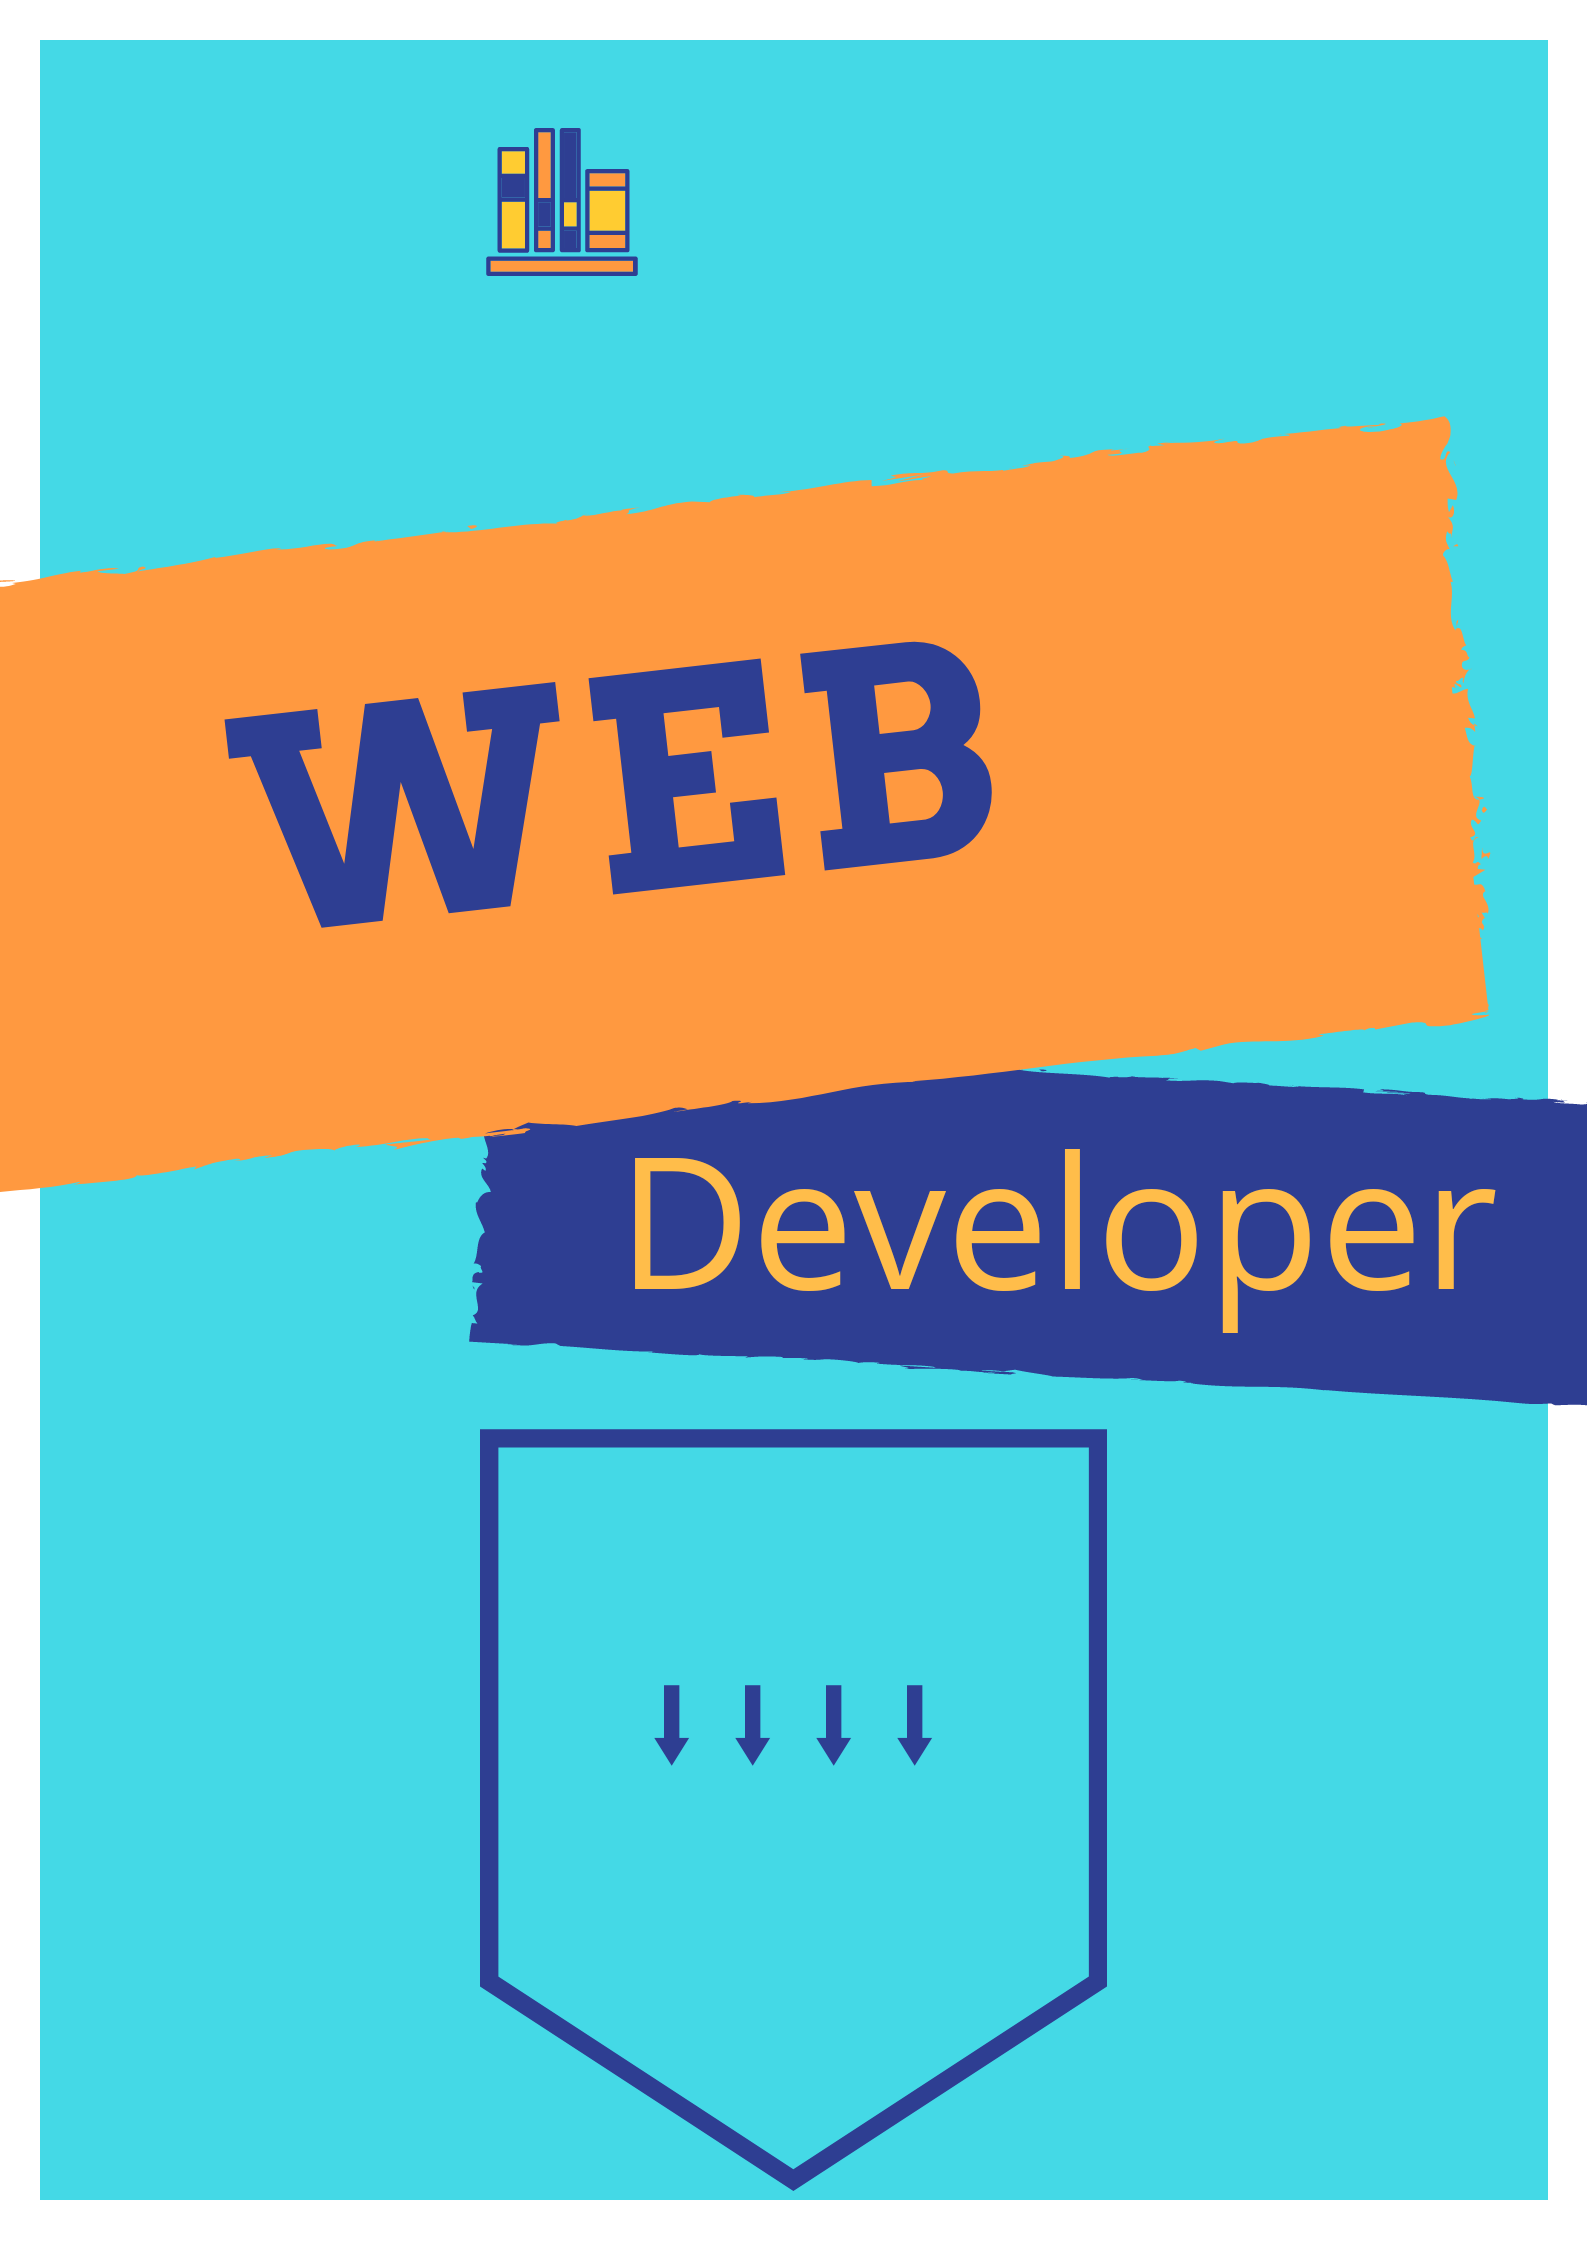 How much can a web developer earn from freelancing websites